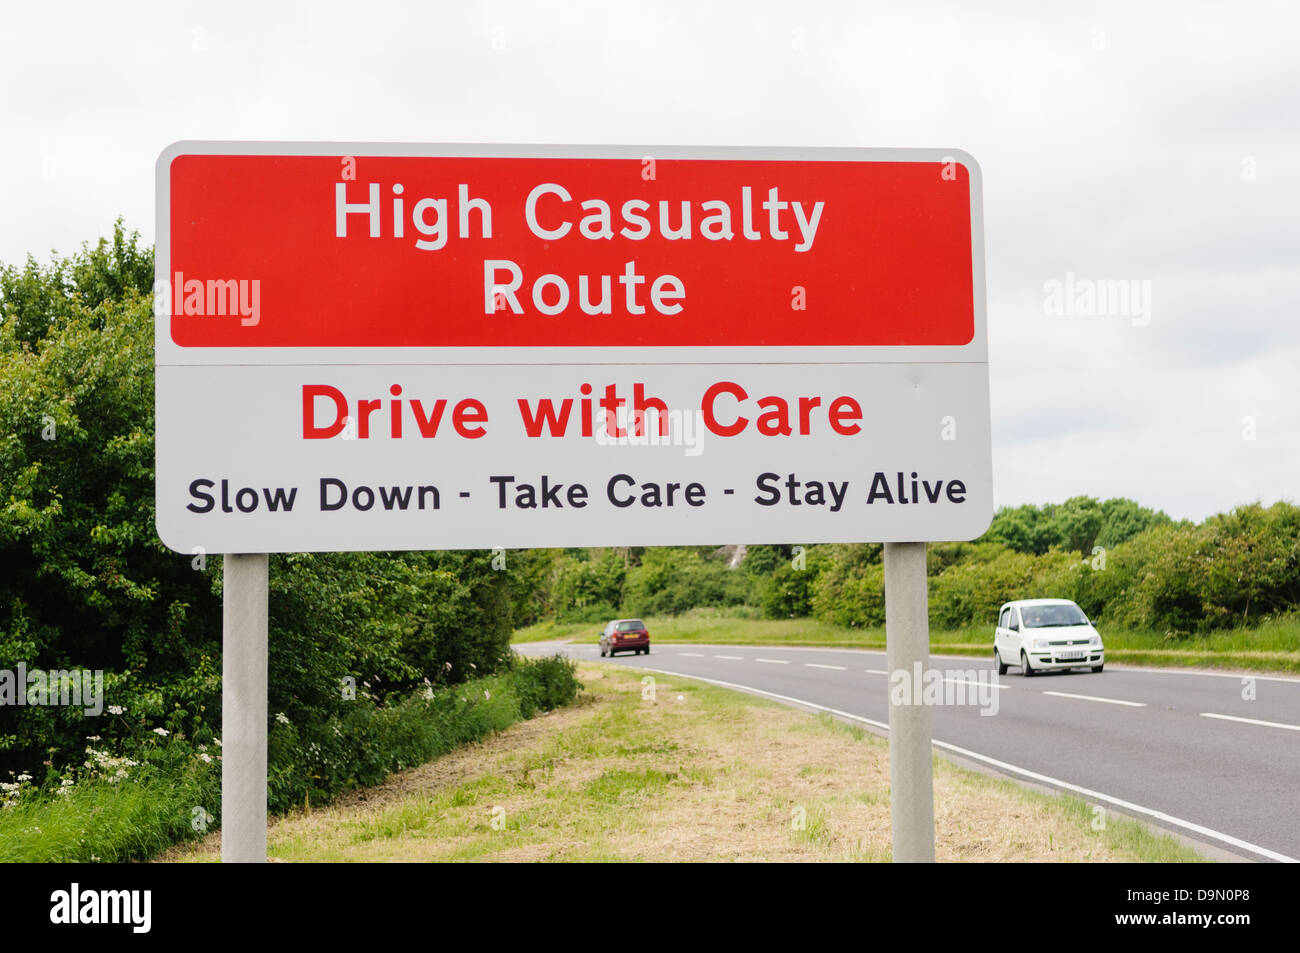 Sign warning drivers they are in a high casualty area and to drive with care and slow down - Stock Image